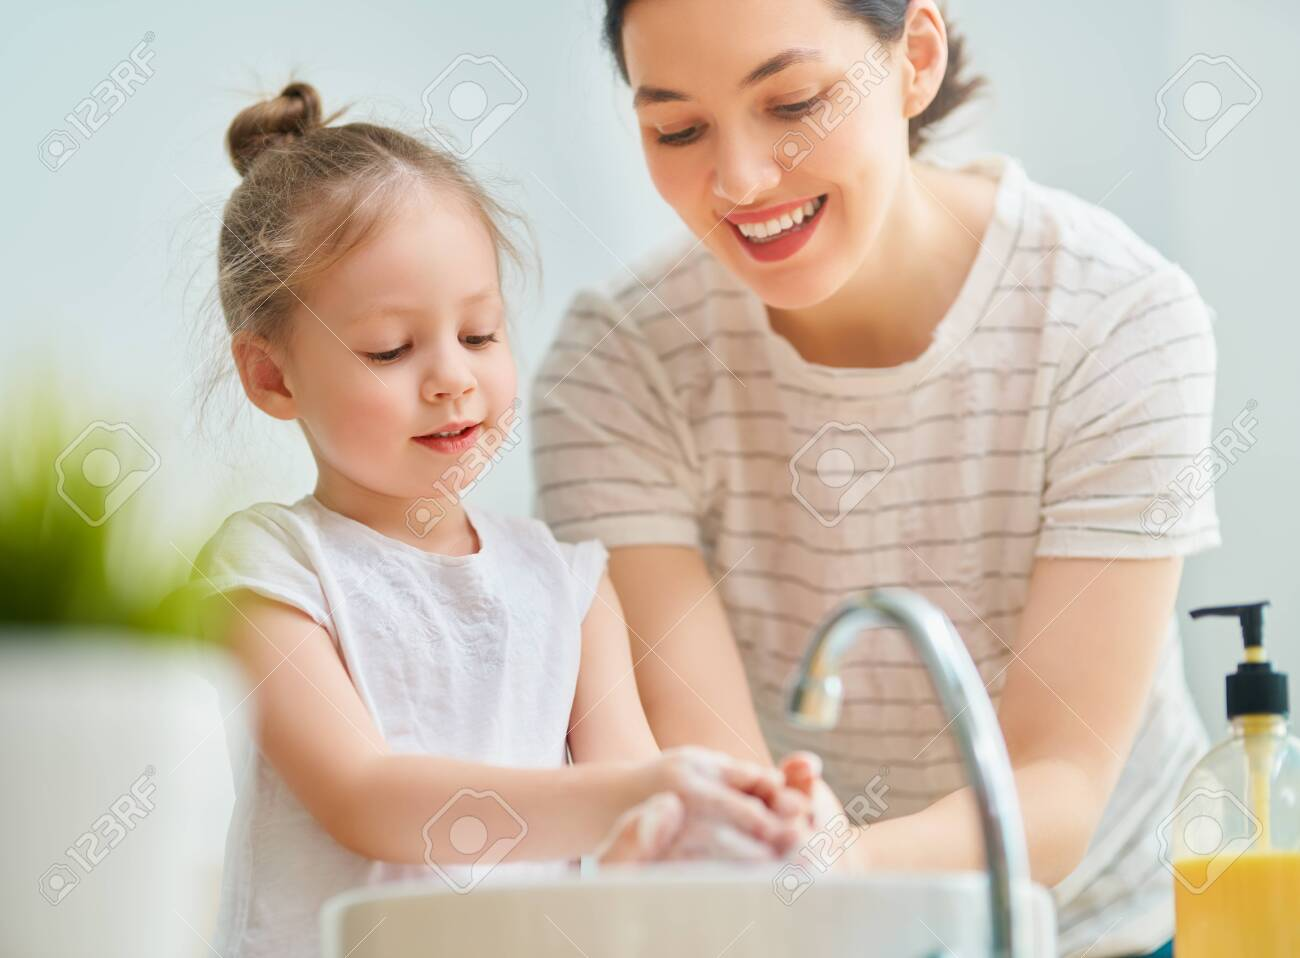 A cute little girl and her mother are washing their hands. - 142932318